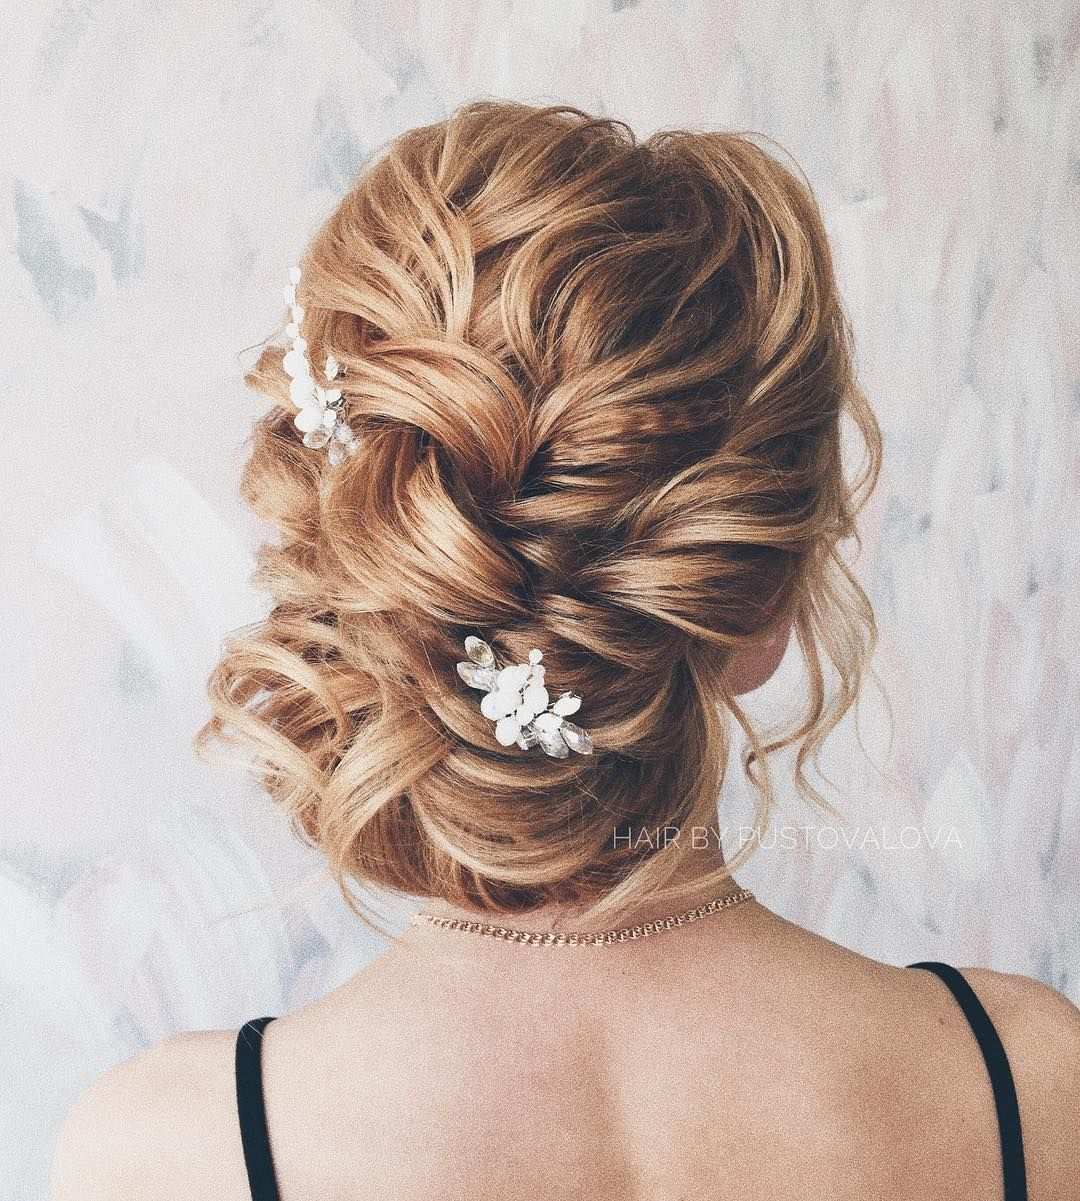 beautiful updo hairstyle to inspire your big day